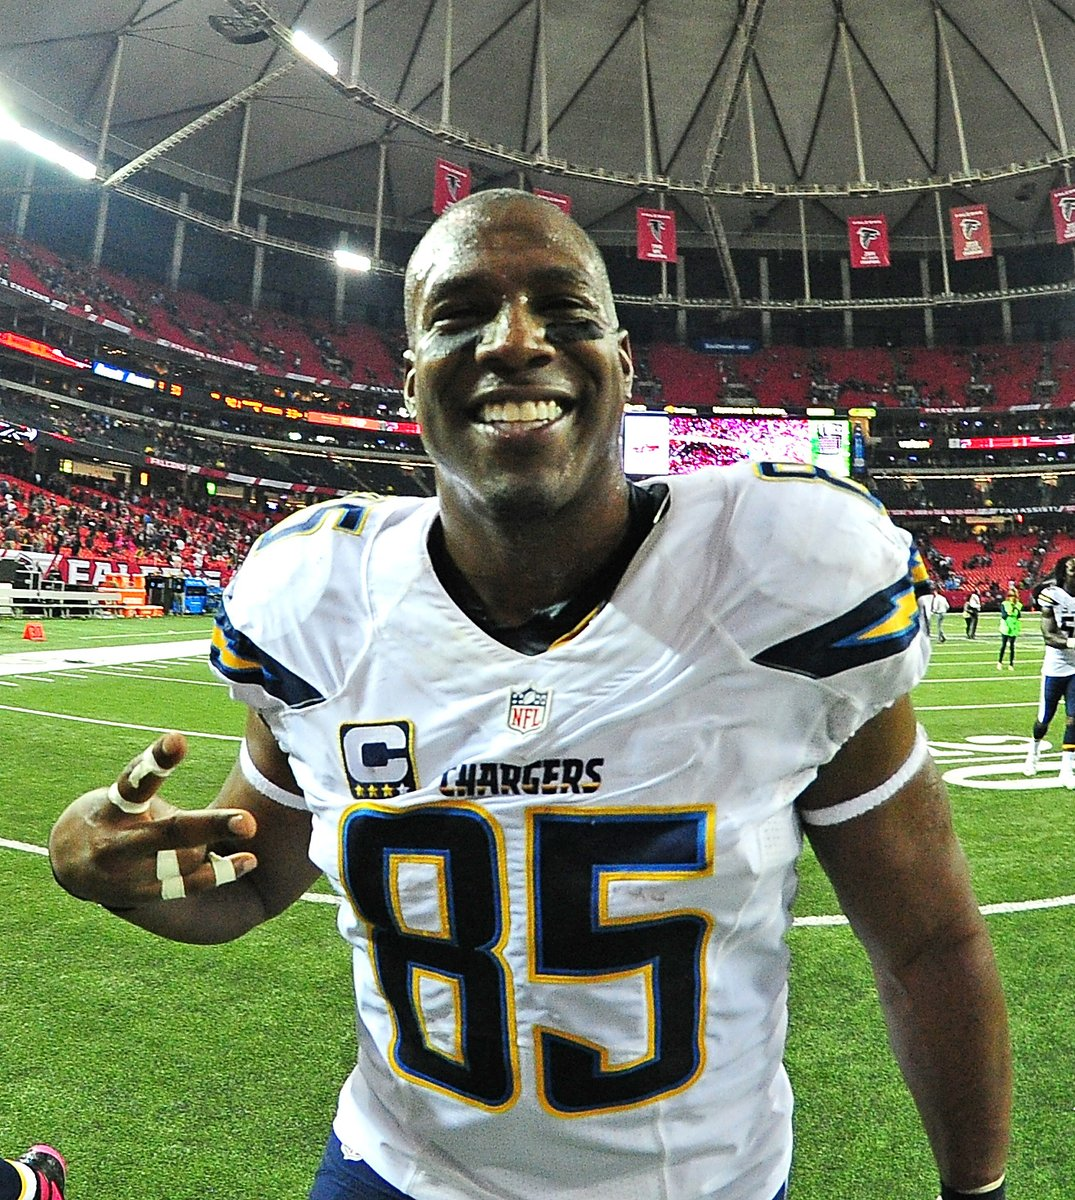 Antonio Gates has announced his retirement after 16 seasons in the NFL.  One of the greatest tight ends ever.